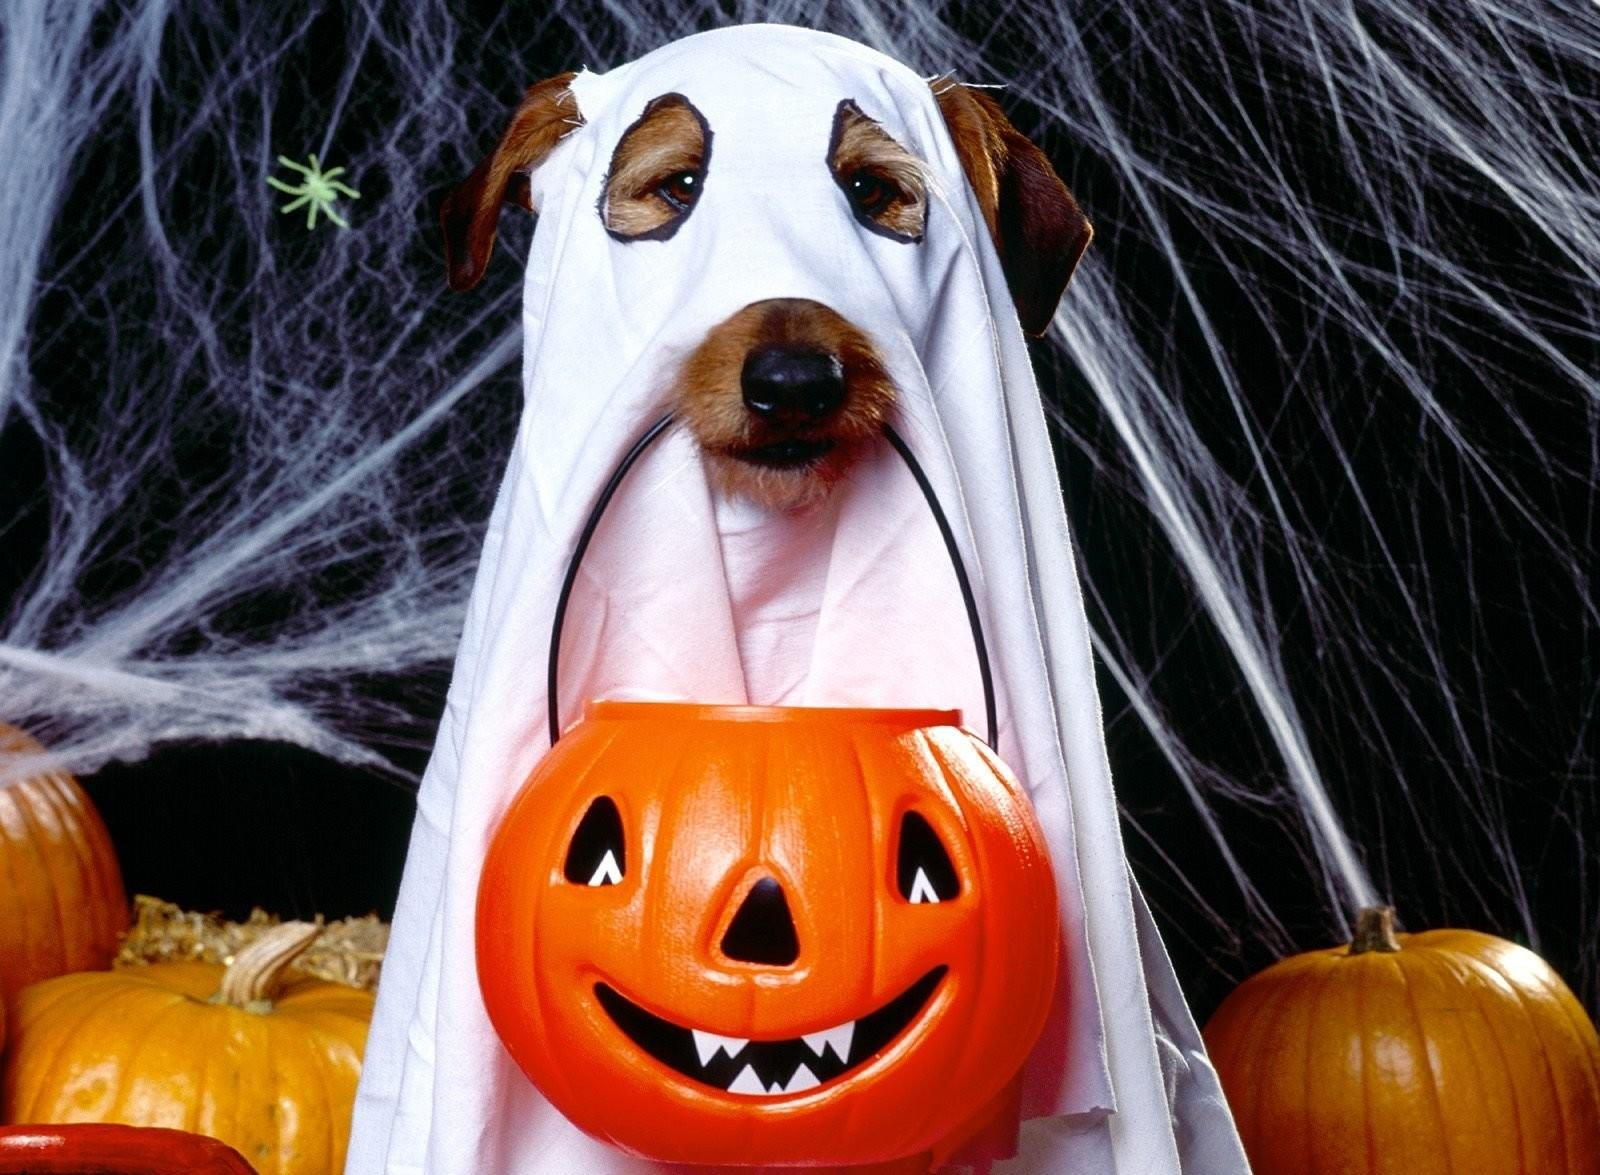 105032 Screensavers and Wallpapers Halloween for phone. Download Holidays, Halloween, Web, Dog, Holiday, Bringing, Reduction, Jack's Lantern pictures for free